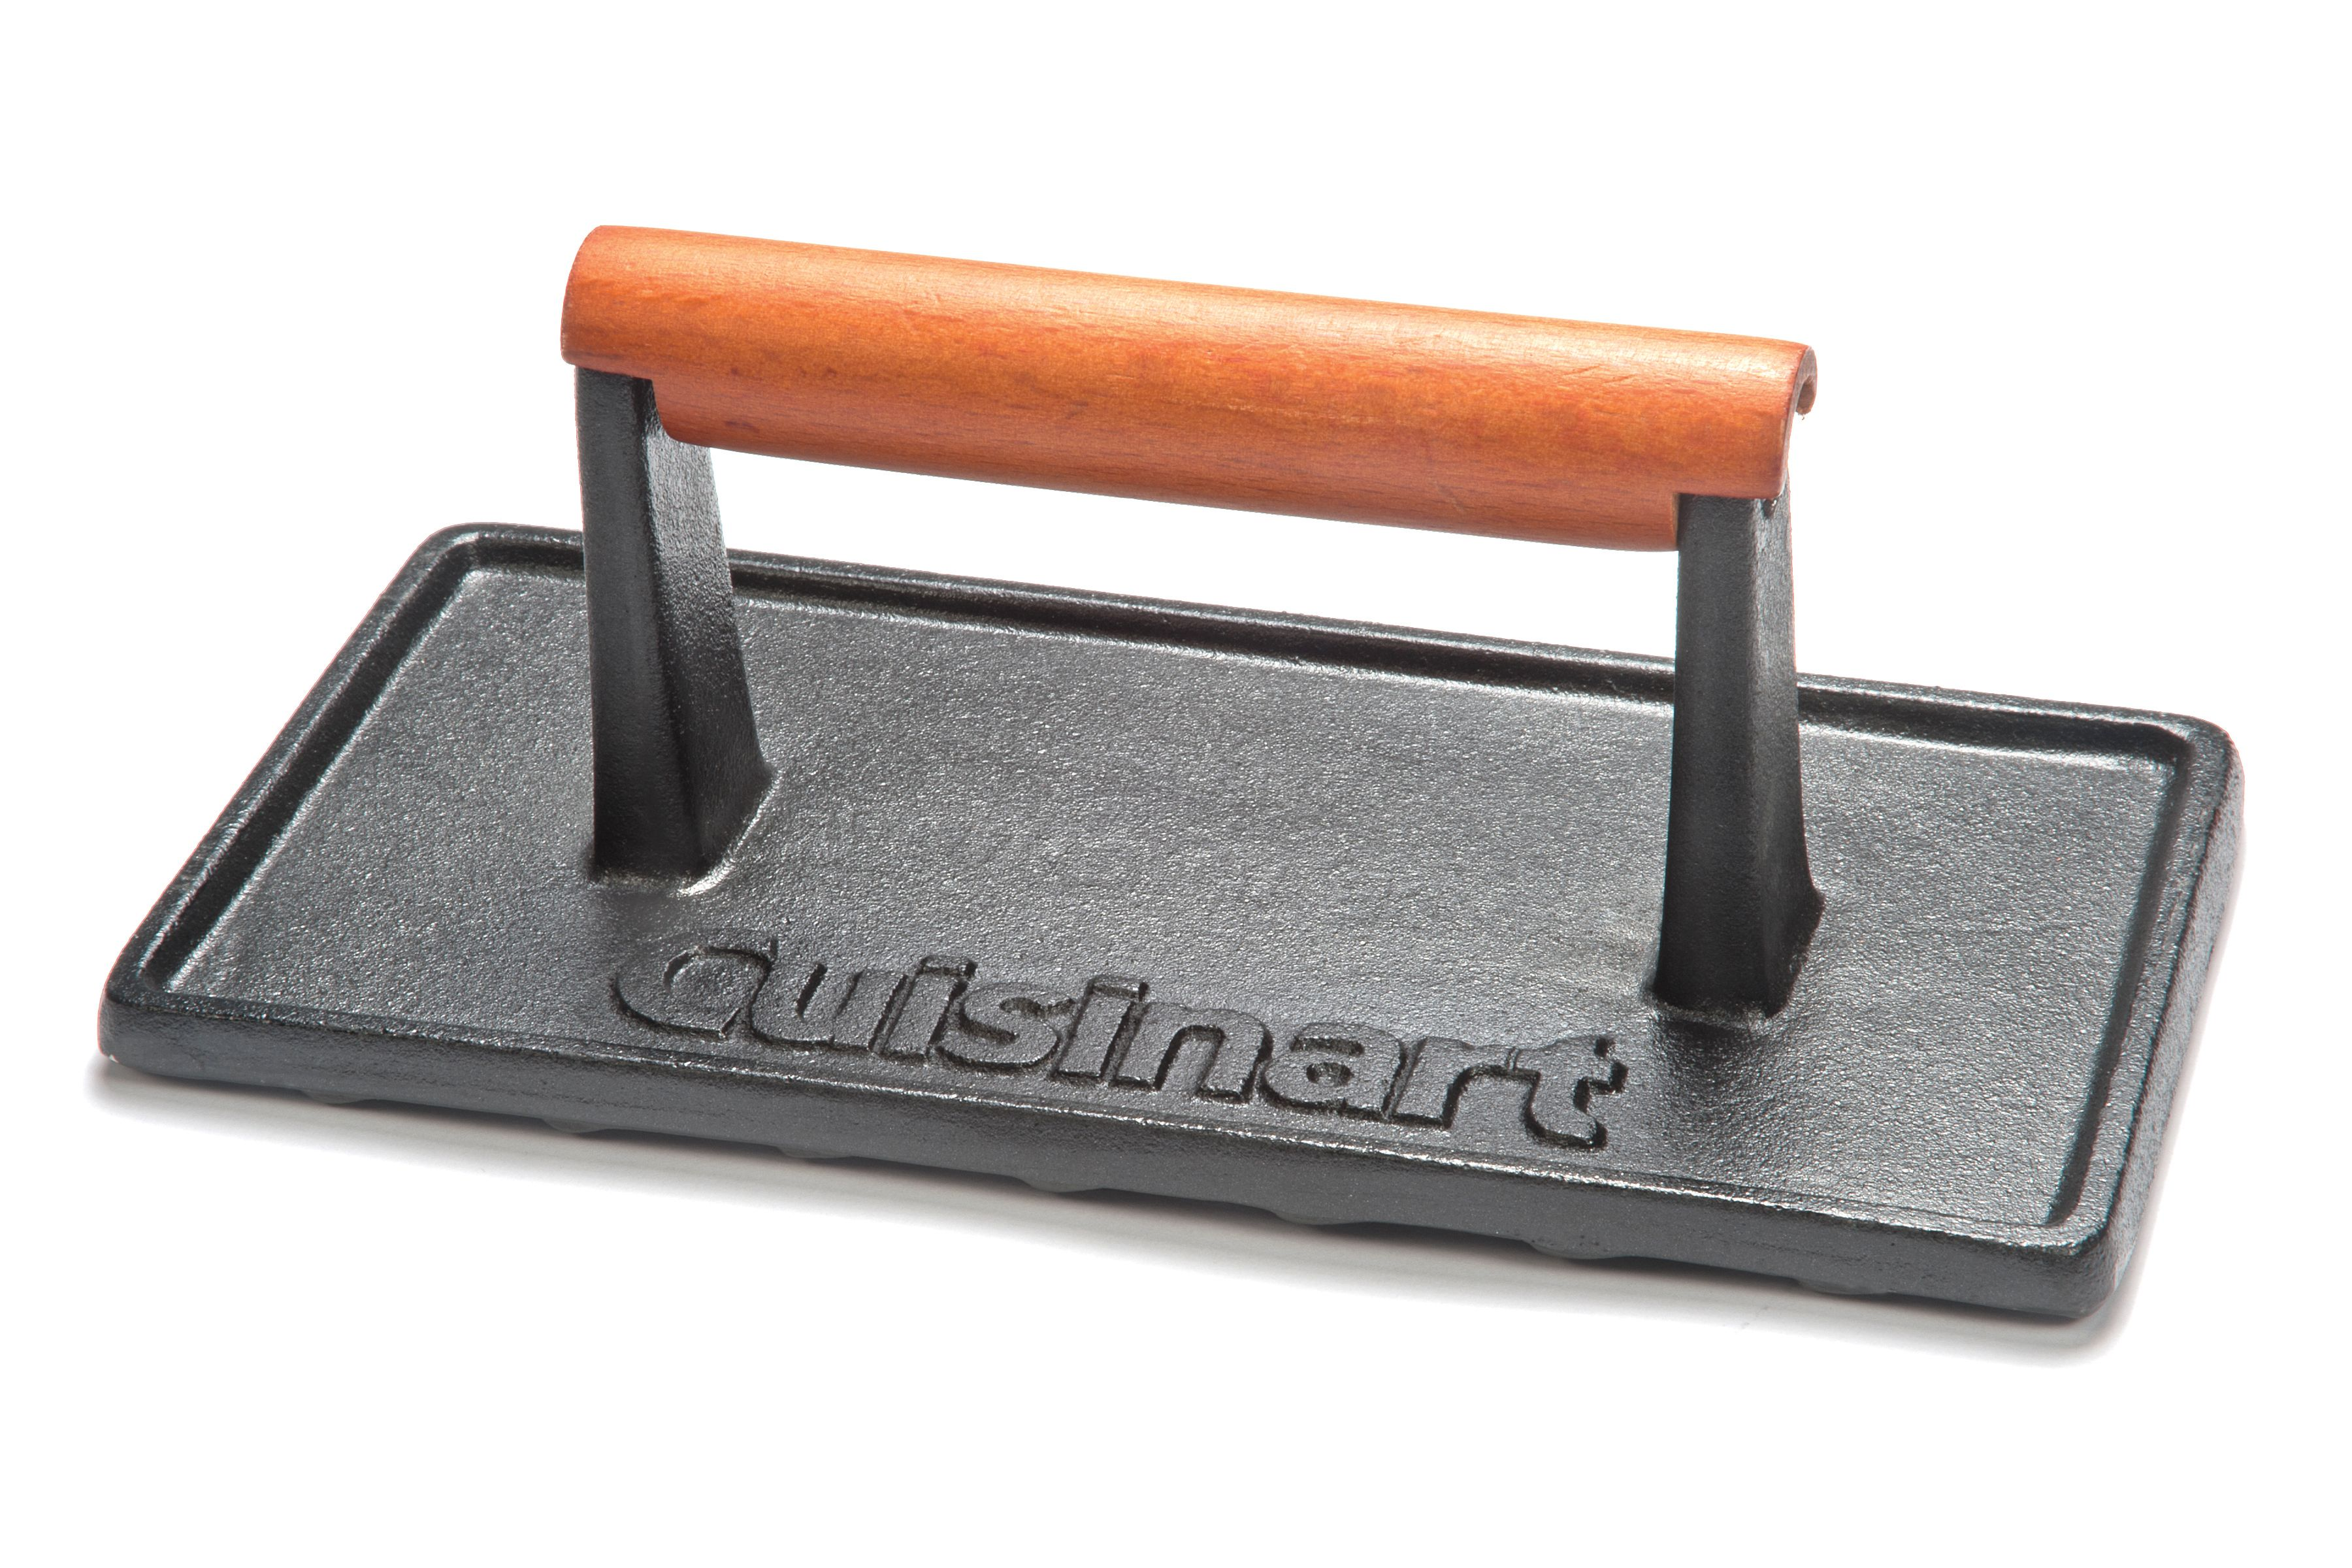 Cuisinart Cast Iron Grill Press by Cuisinart